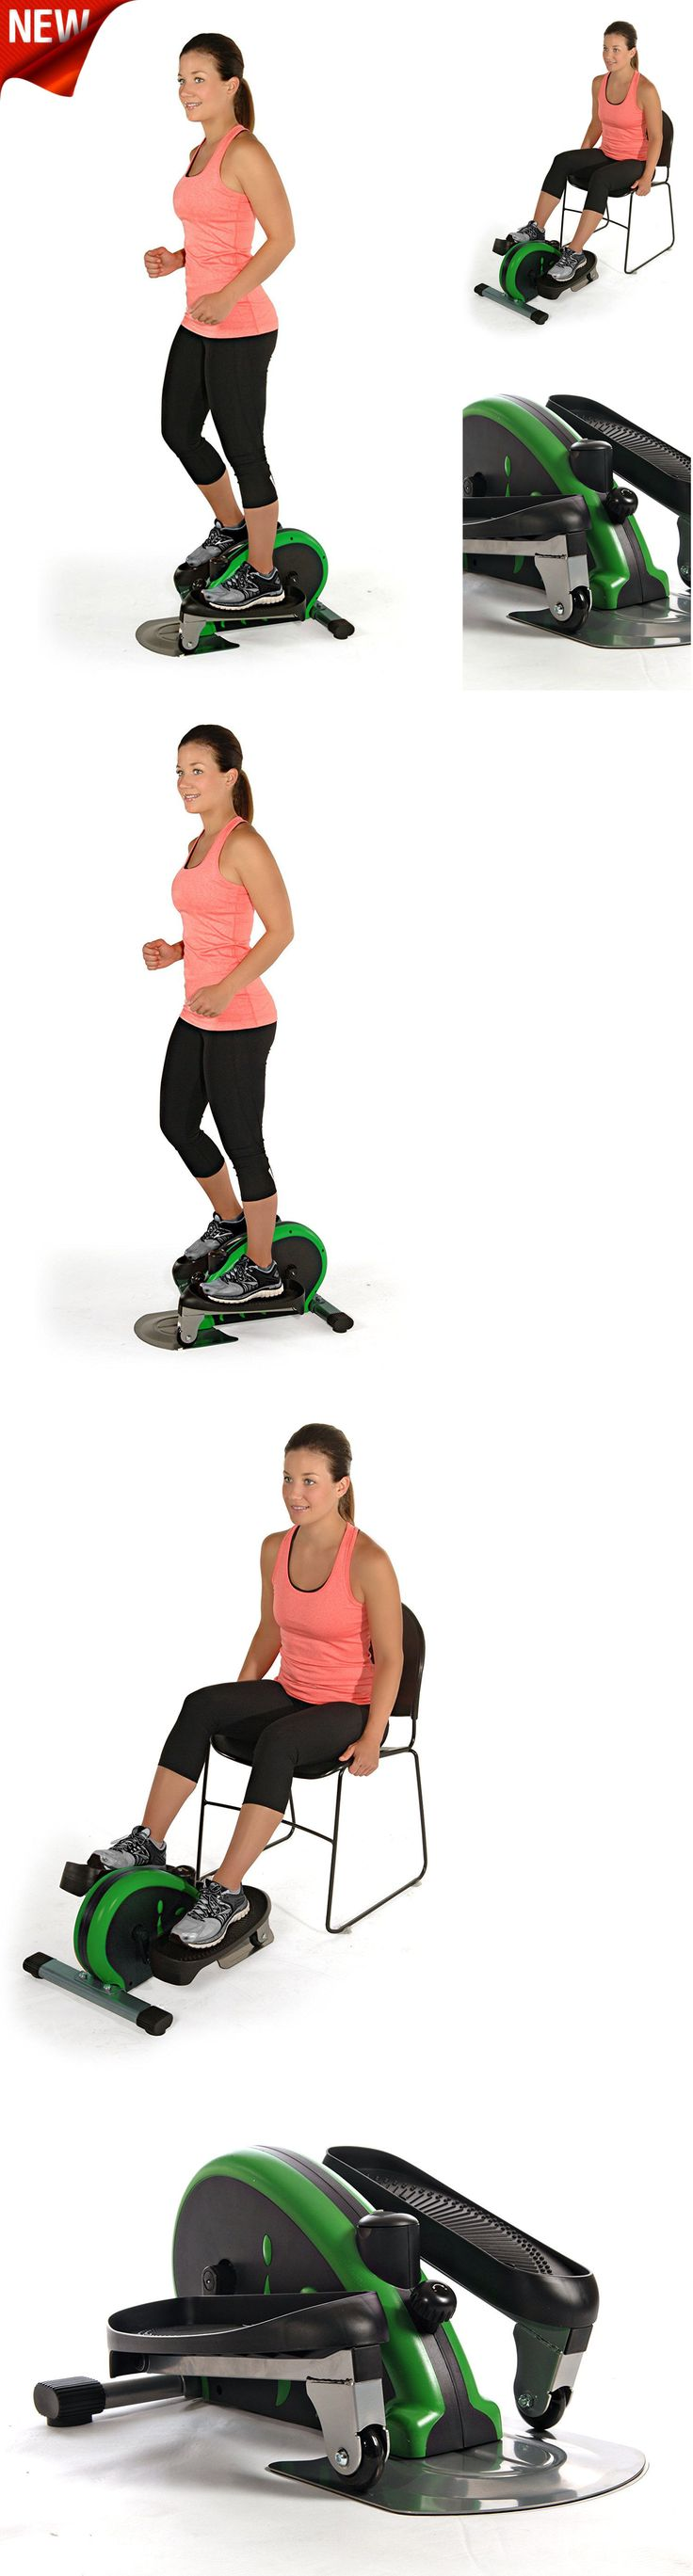 Ellipticals 72602: Stamina Inmotion Elliptical Trainer Indoor Exercise Cardio Fitness Gym Body New -> BUY IT NOW ONLY: $101.59 on eBay!